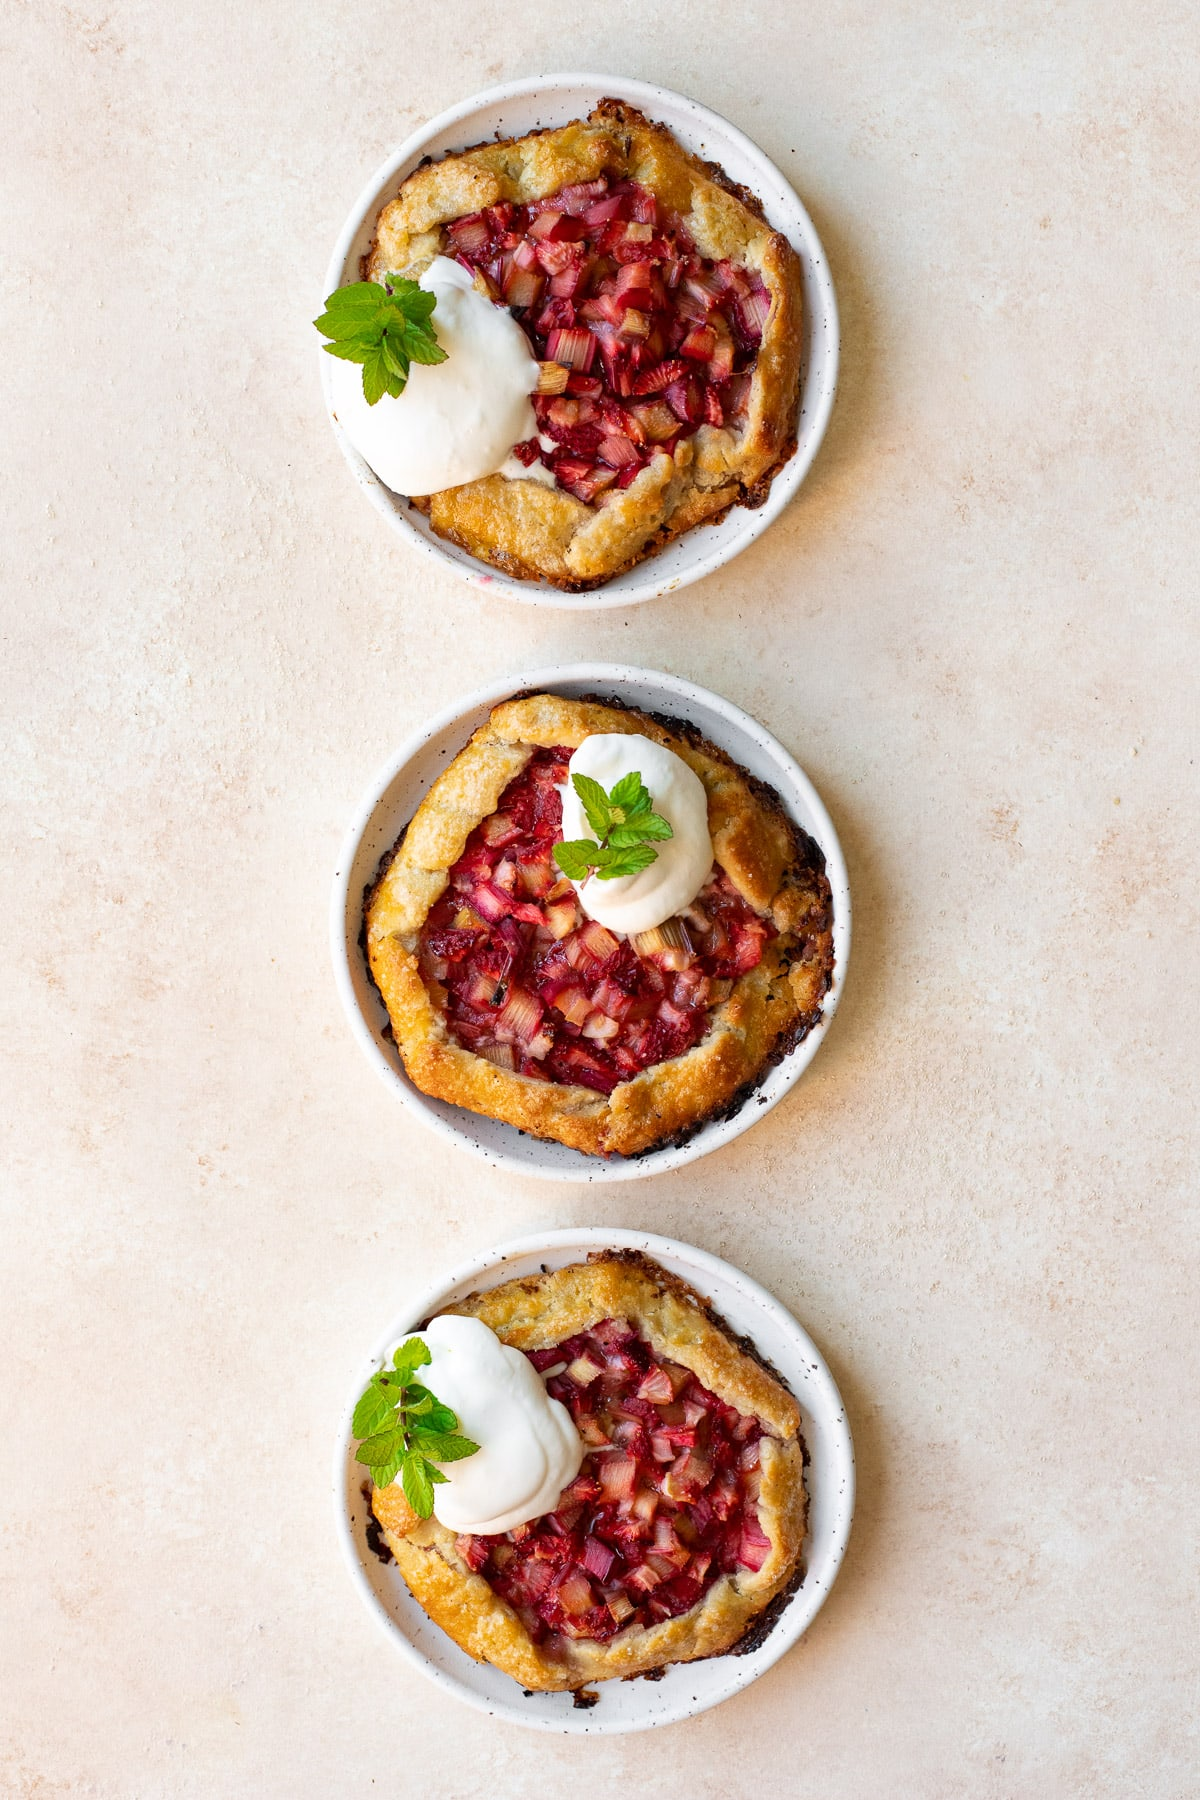 Overhead view of these mini galettes on small plates, topped with whipped cream and garnished with mint.